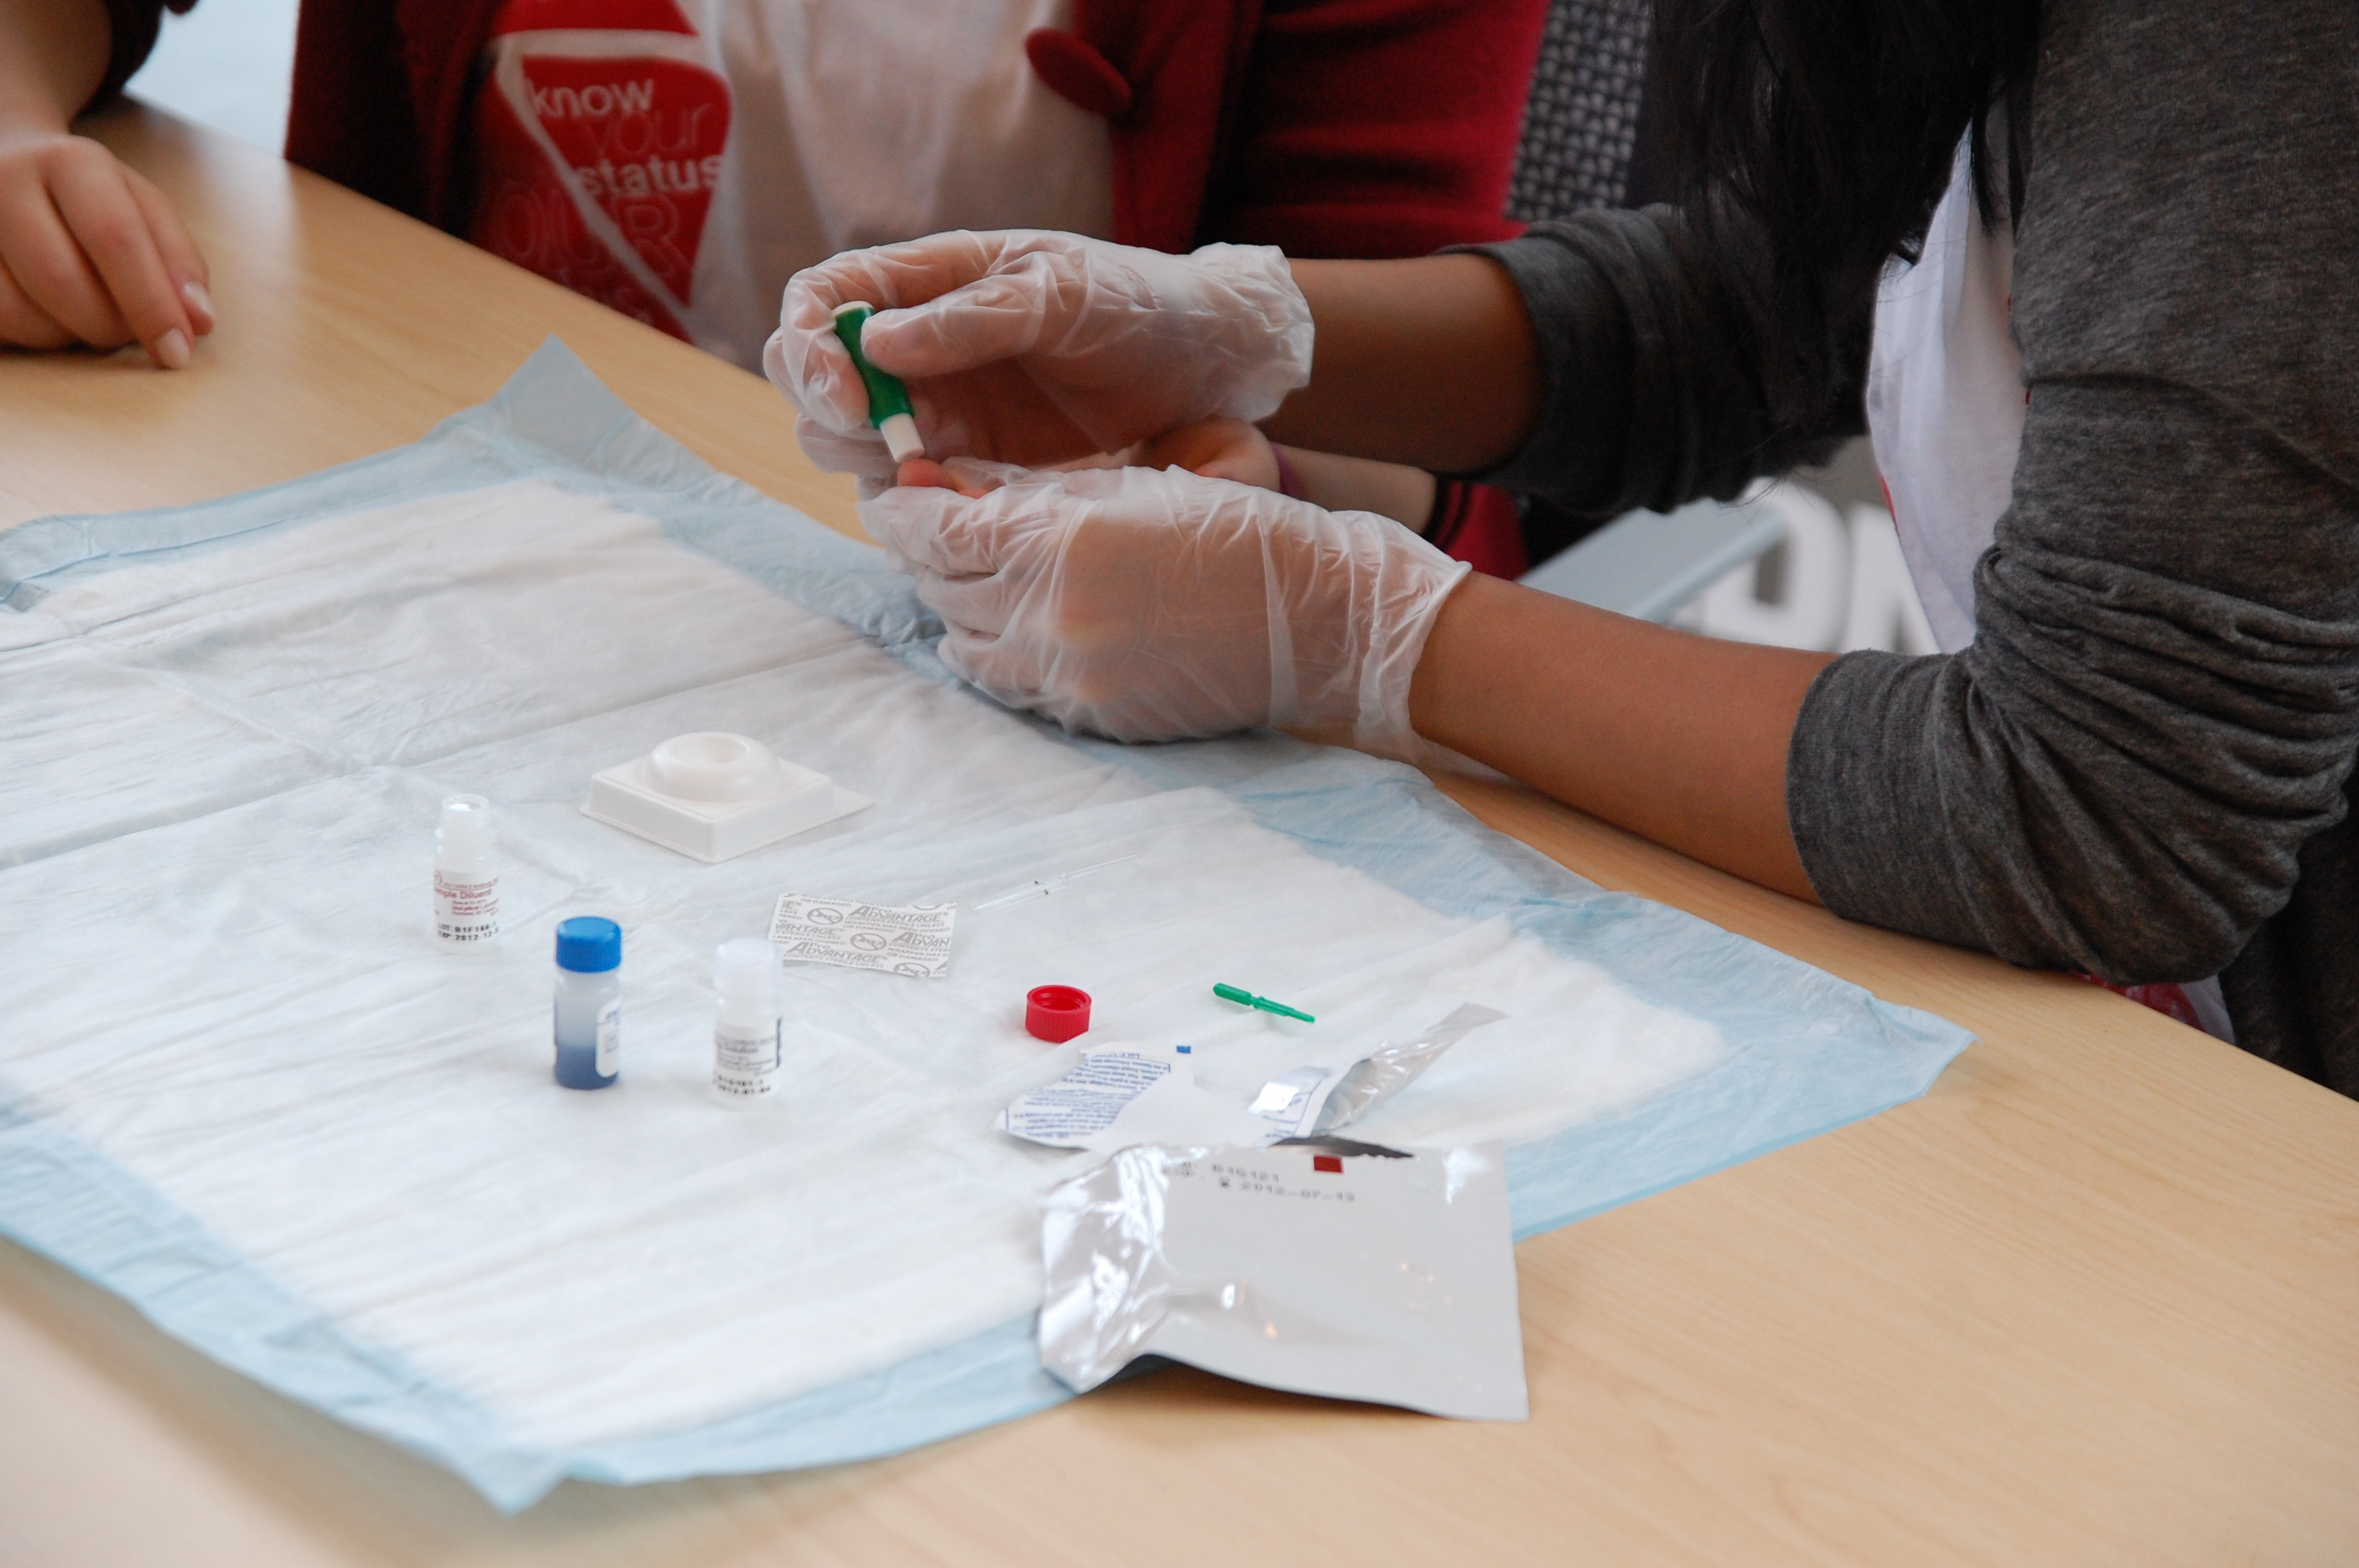 Number of new HIV infections in VCH drops 52% since 2011